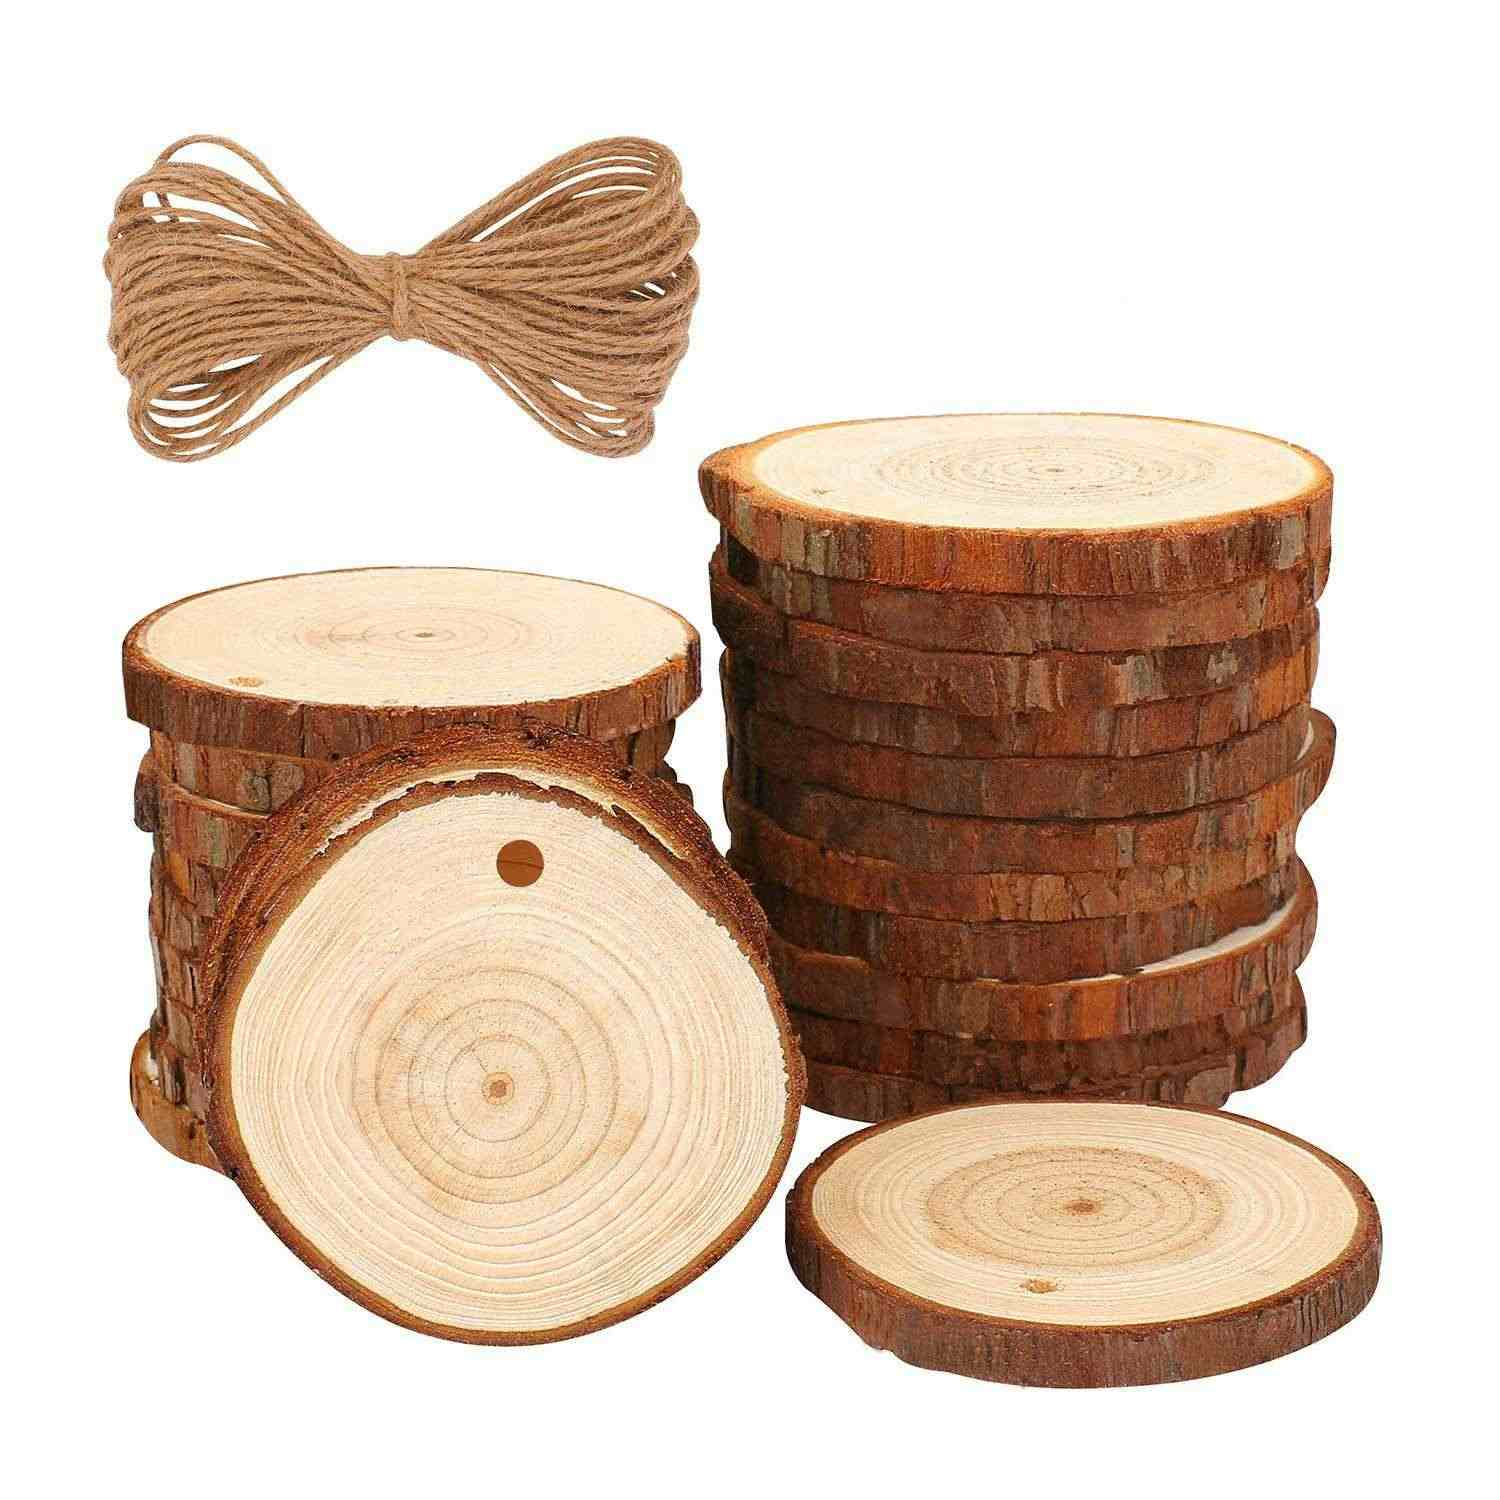 Hot-Natural Wood Slices 20 Pcs 3.5 inch-4 inch Craft Wood Kit Unfinished Predrilled With Hole Wooden Circles Tree Slices For A